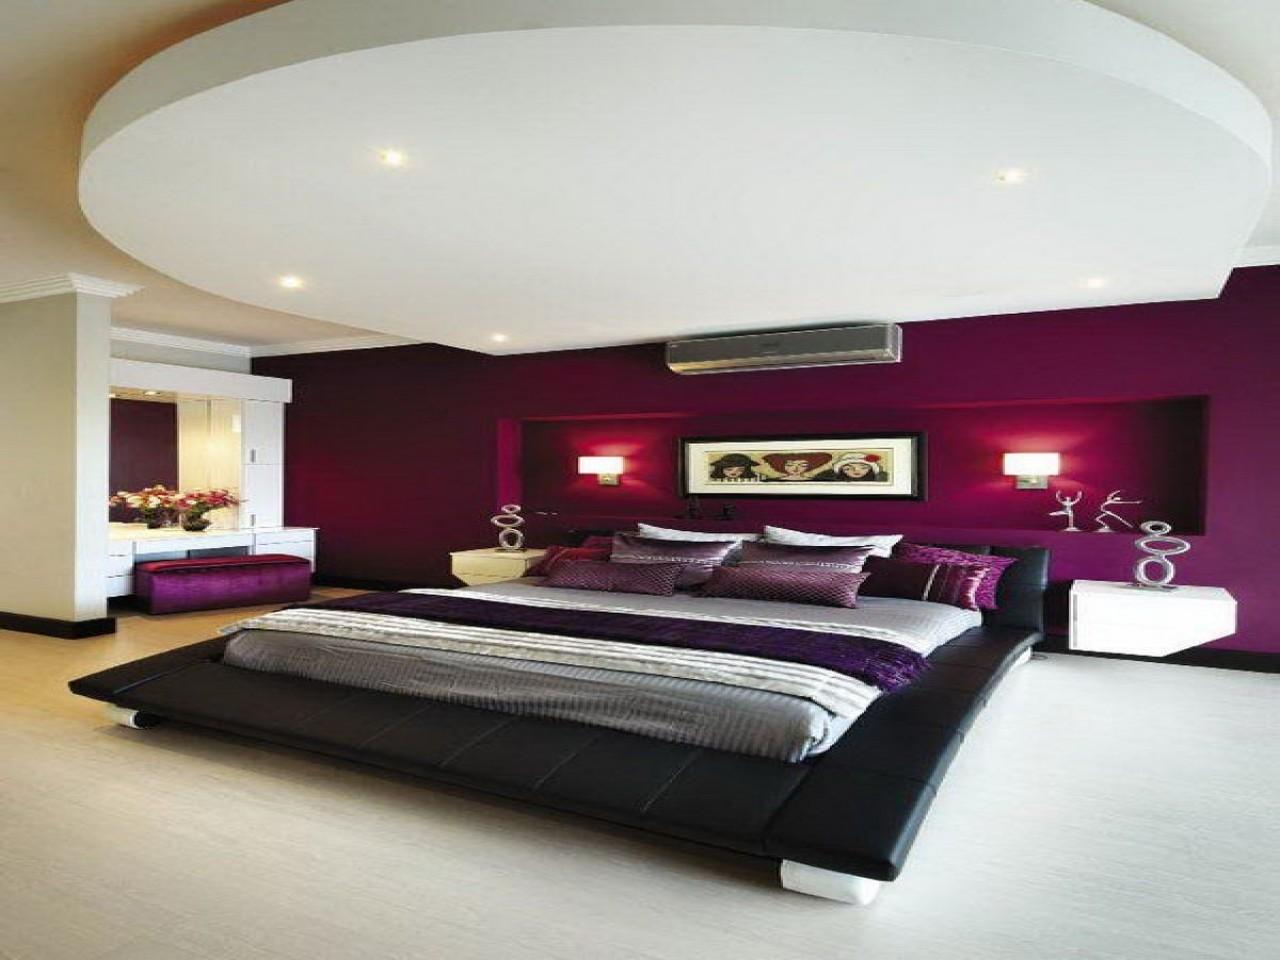 Customize Your Bedroom Themes Cars